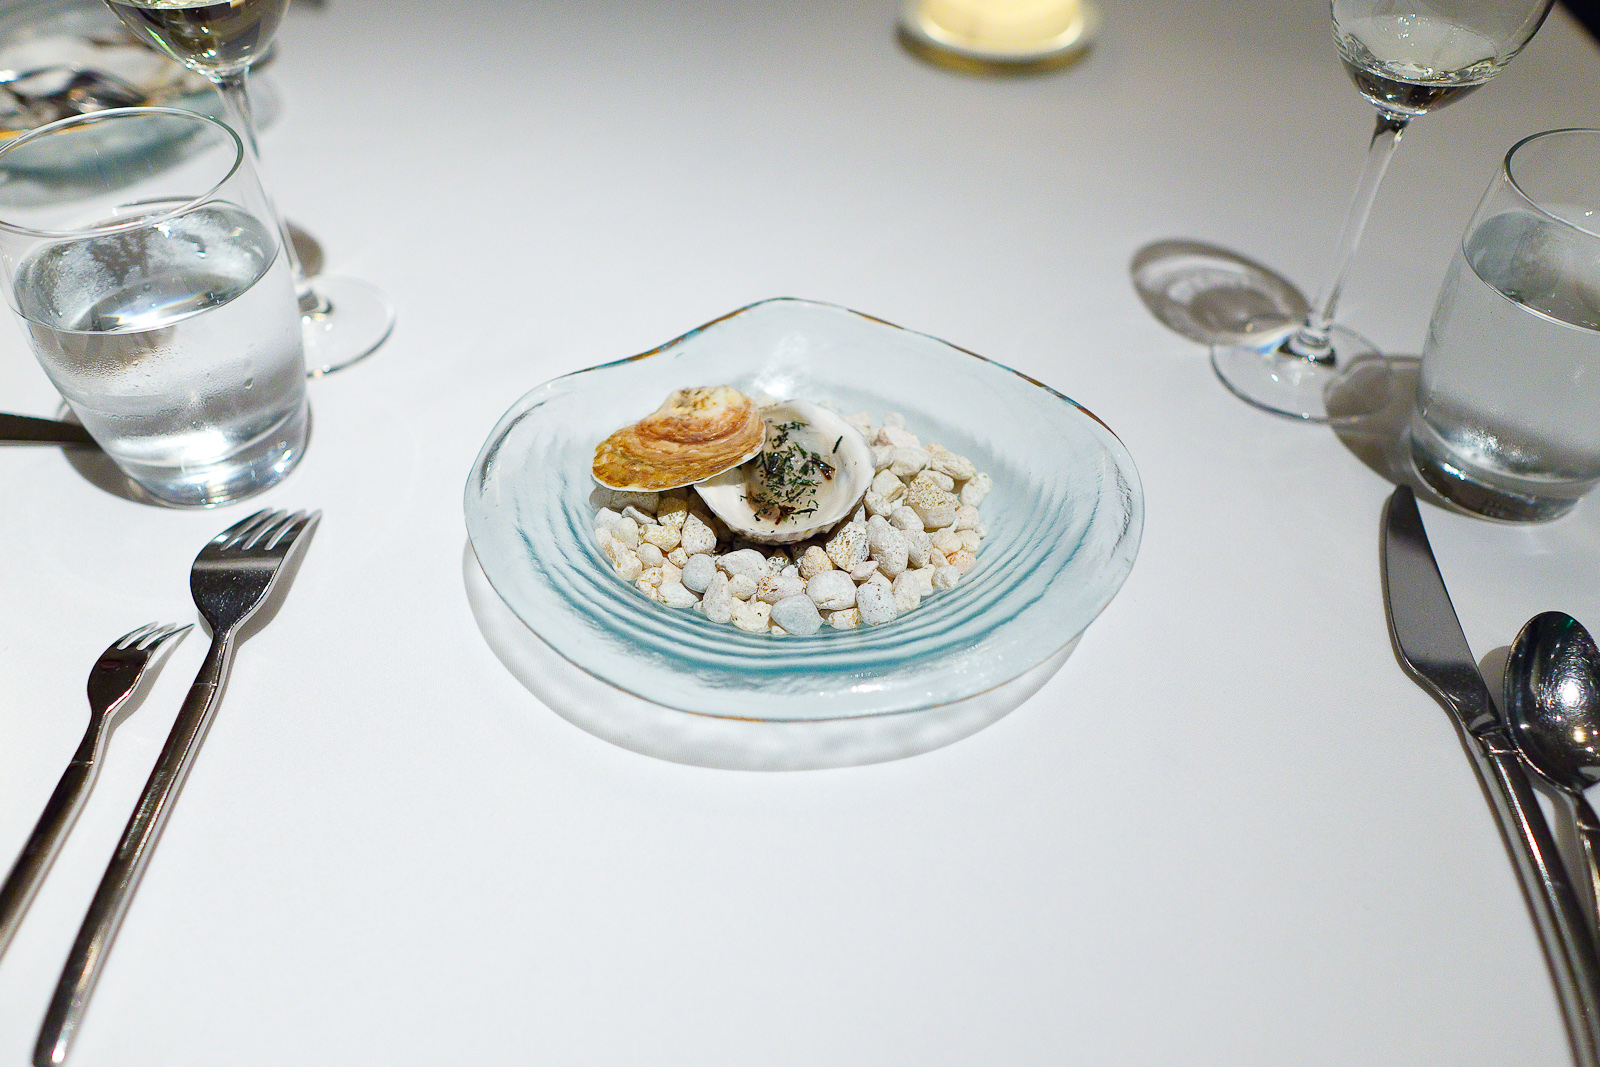 """3rd Course: """"An elemental oyster"""" - Lightly poached in its own shell, ocean water gelée, nori flakes"""